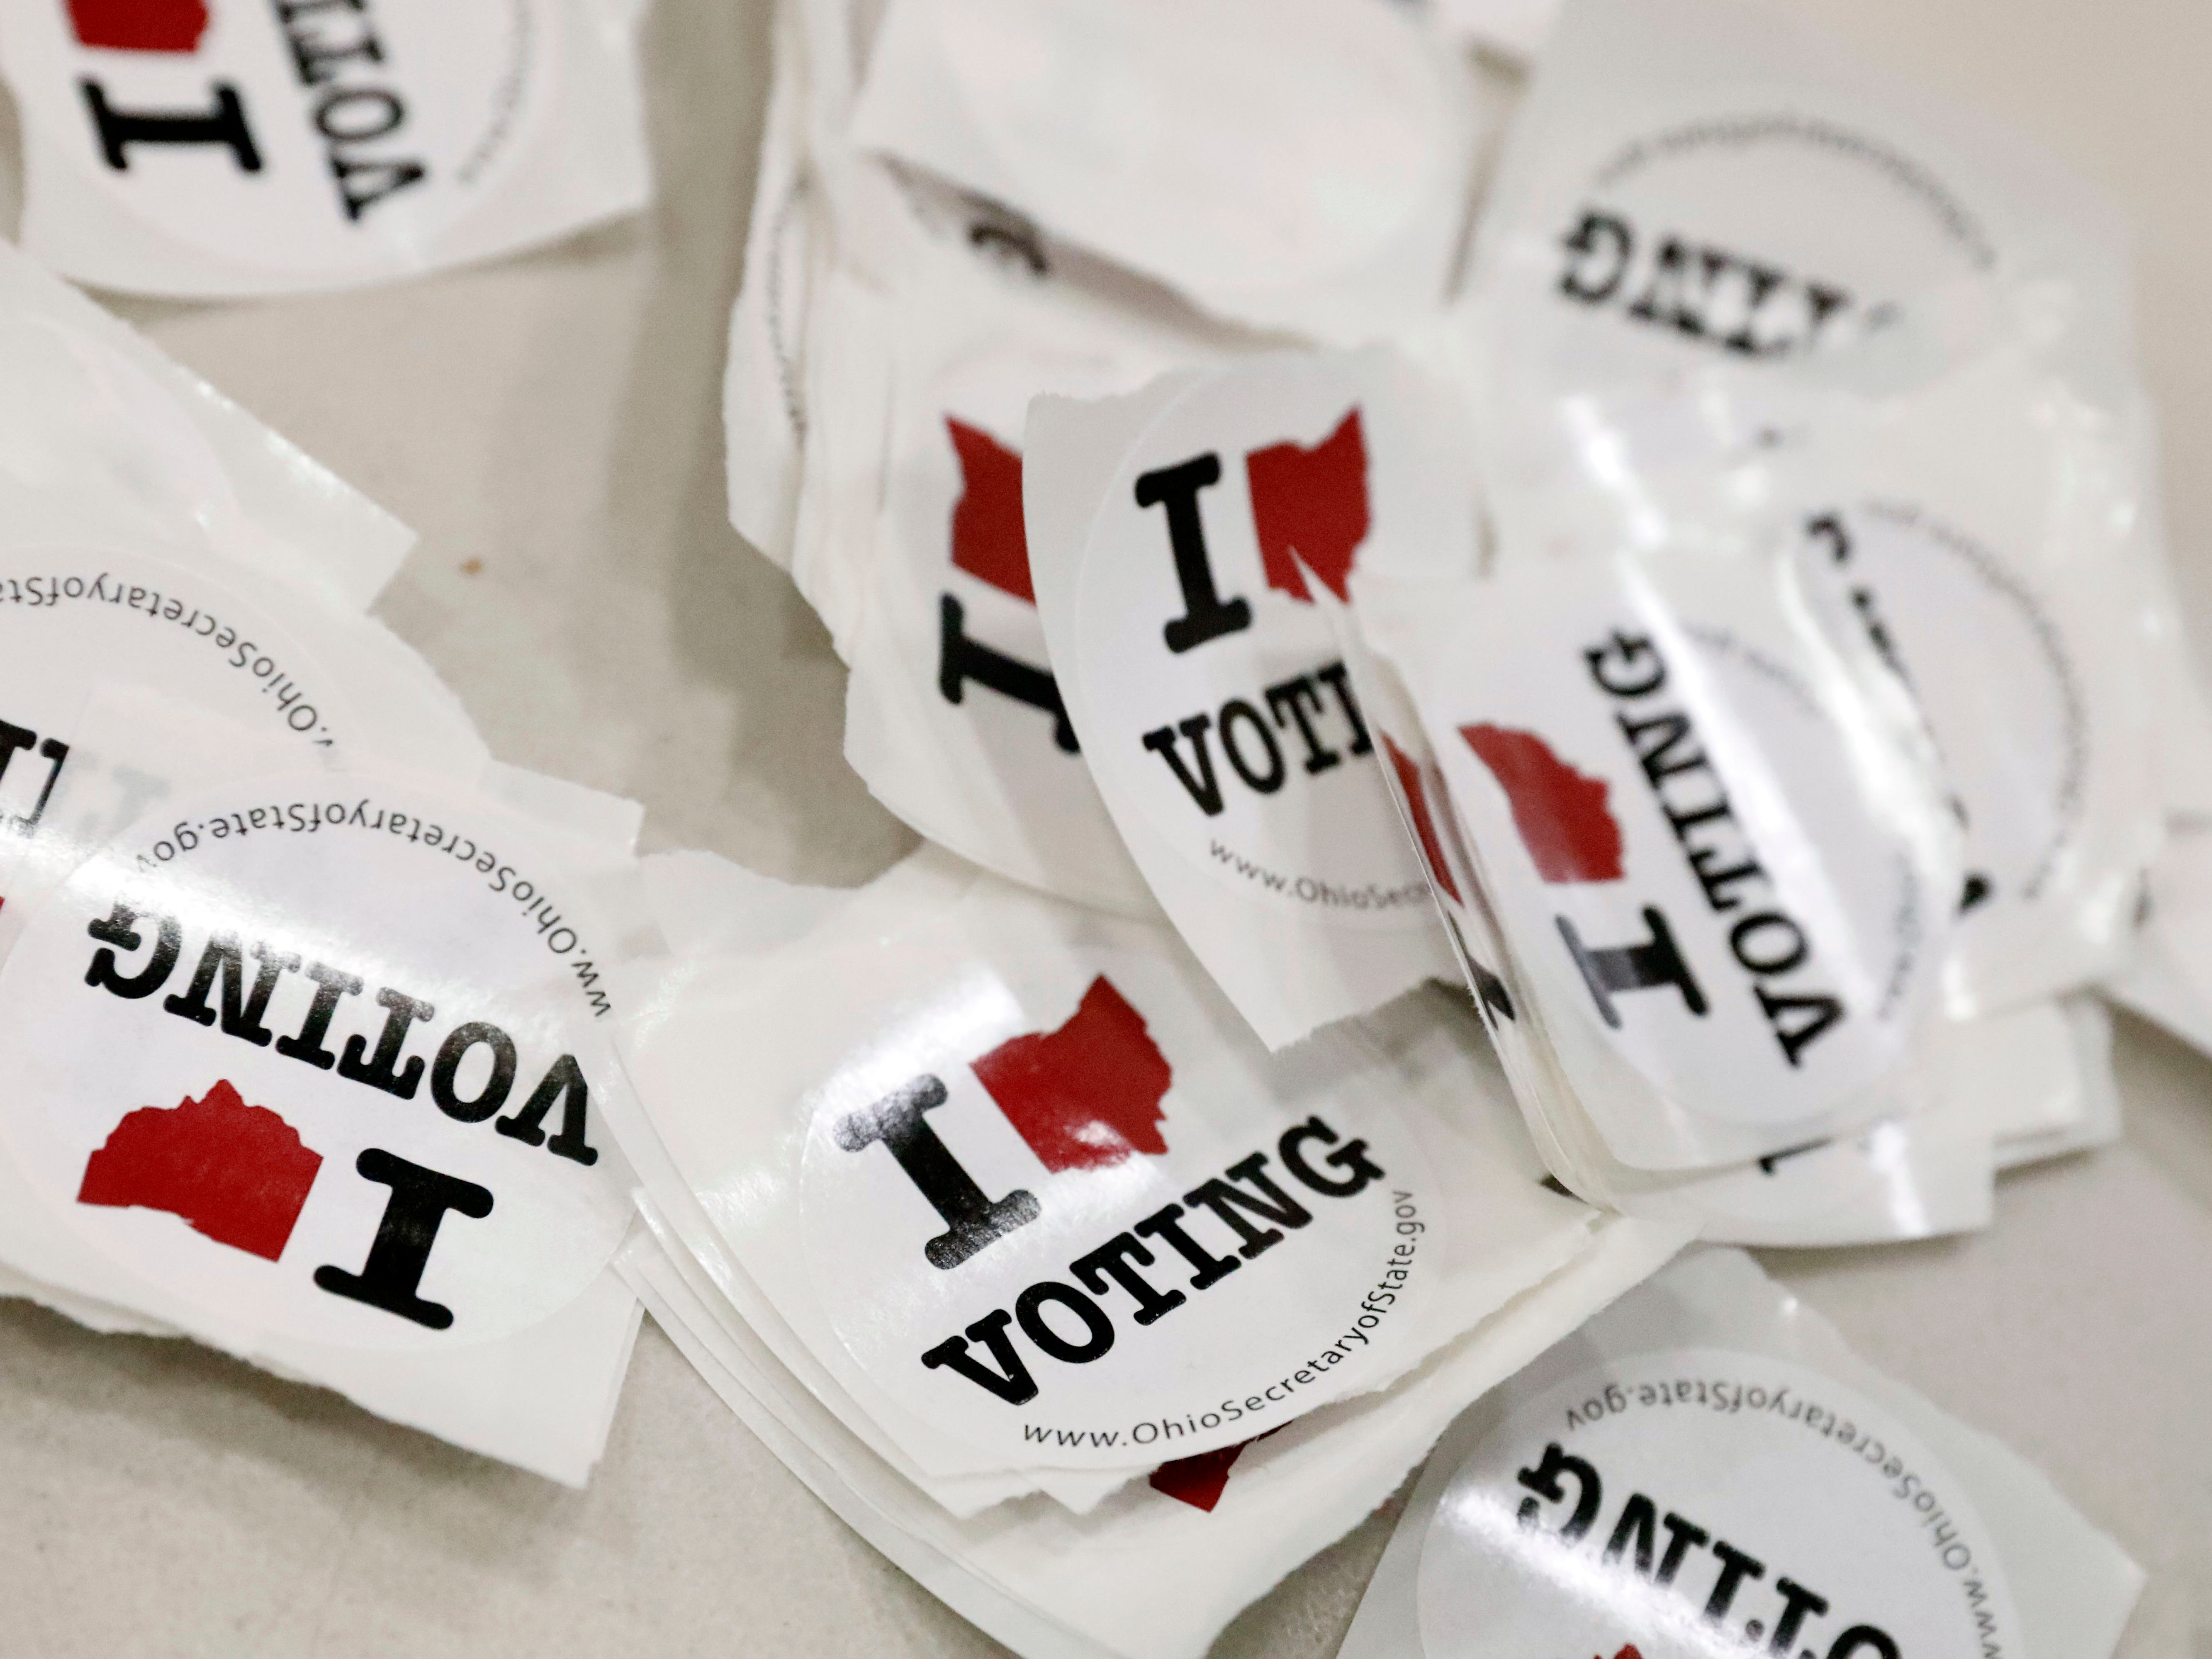 Voting stickers sit on a table at the Crossroads Ministry Center Tuesday, Nov. 6, 2018, in Lancaster.